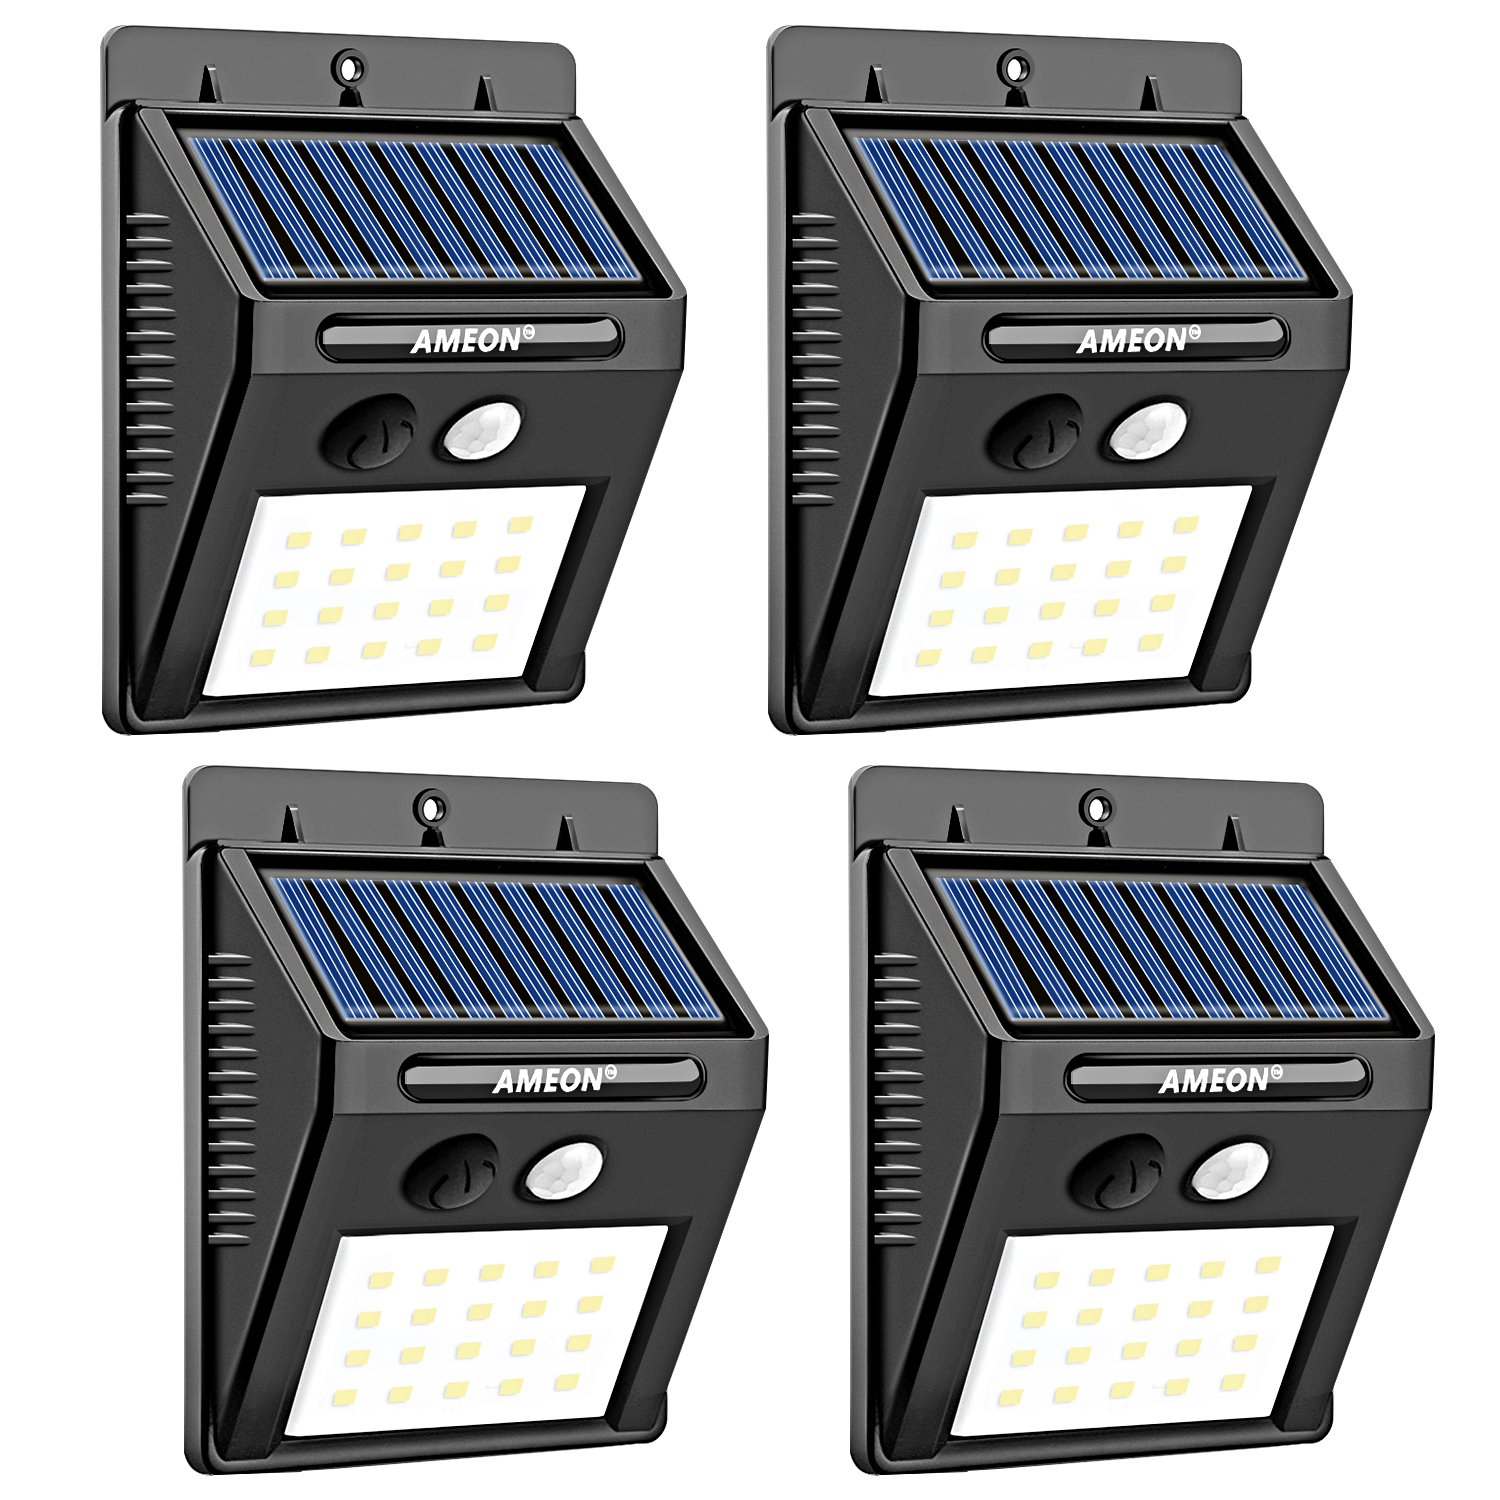 AMEON Solar Lights Outdoor, 20 LED Wireless Waterproof Motion Sensor Lights for Patio, Deck, Yard, Garden with Motion Activated Auto On/Off (4-Pack)